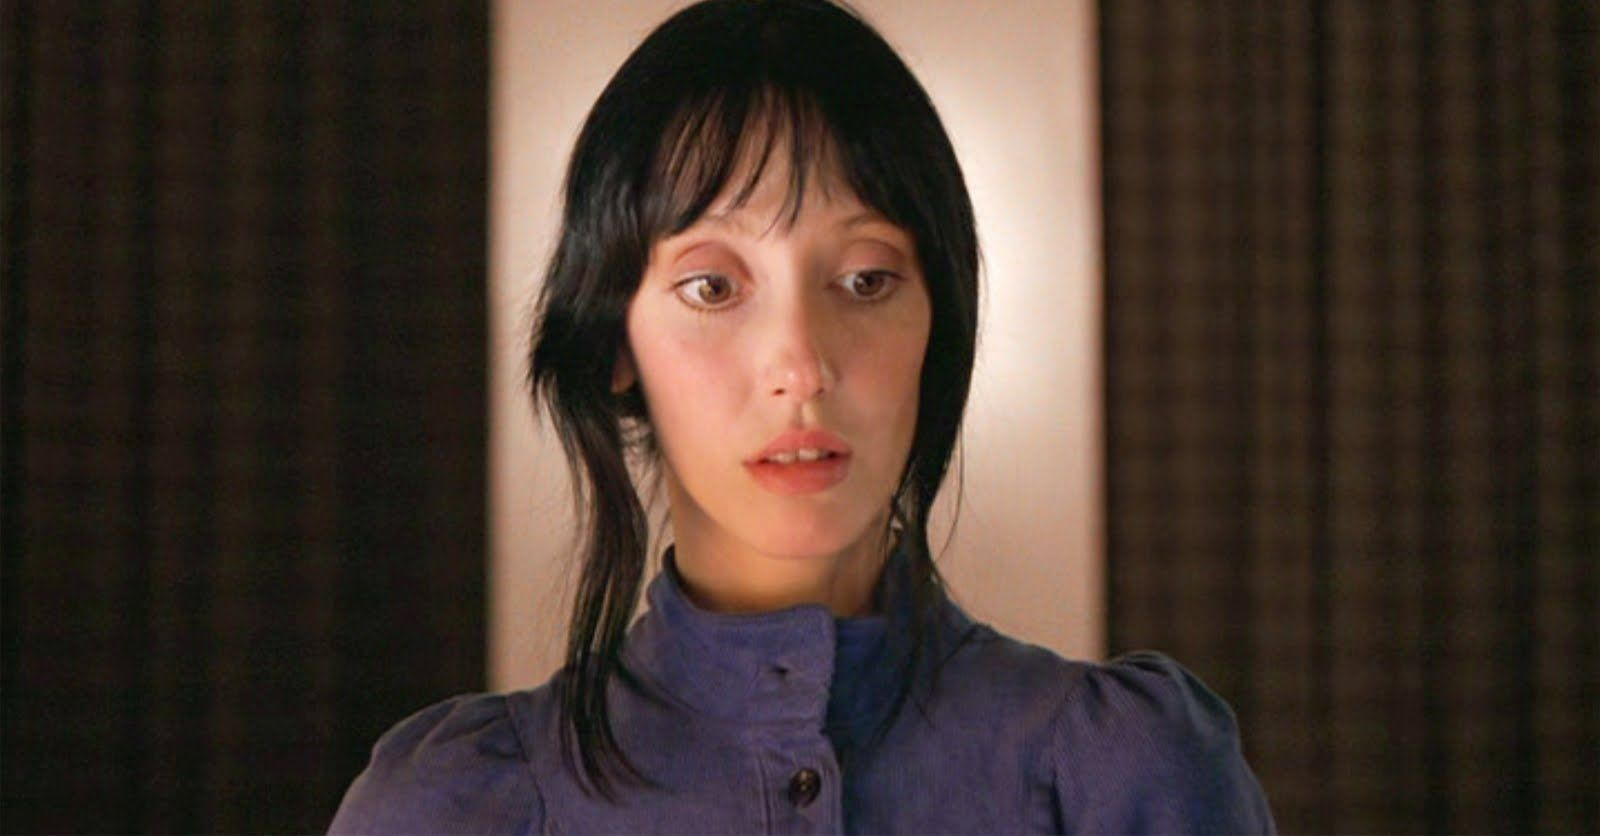 THIS IS WHAT 'THE SHINING' ACTRESS SHELLEY DUVALL LOOKS LIKE NOW